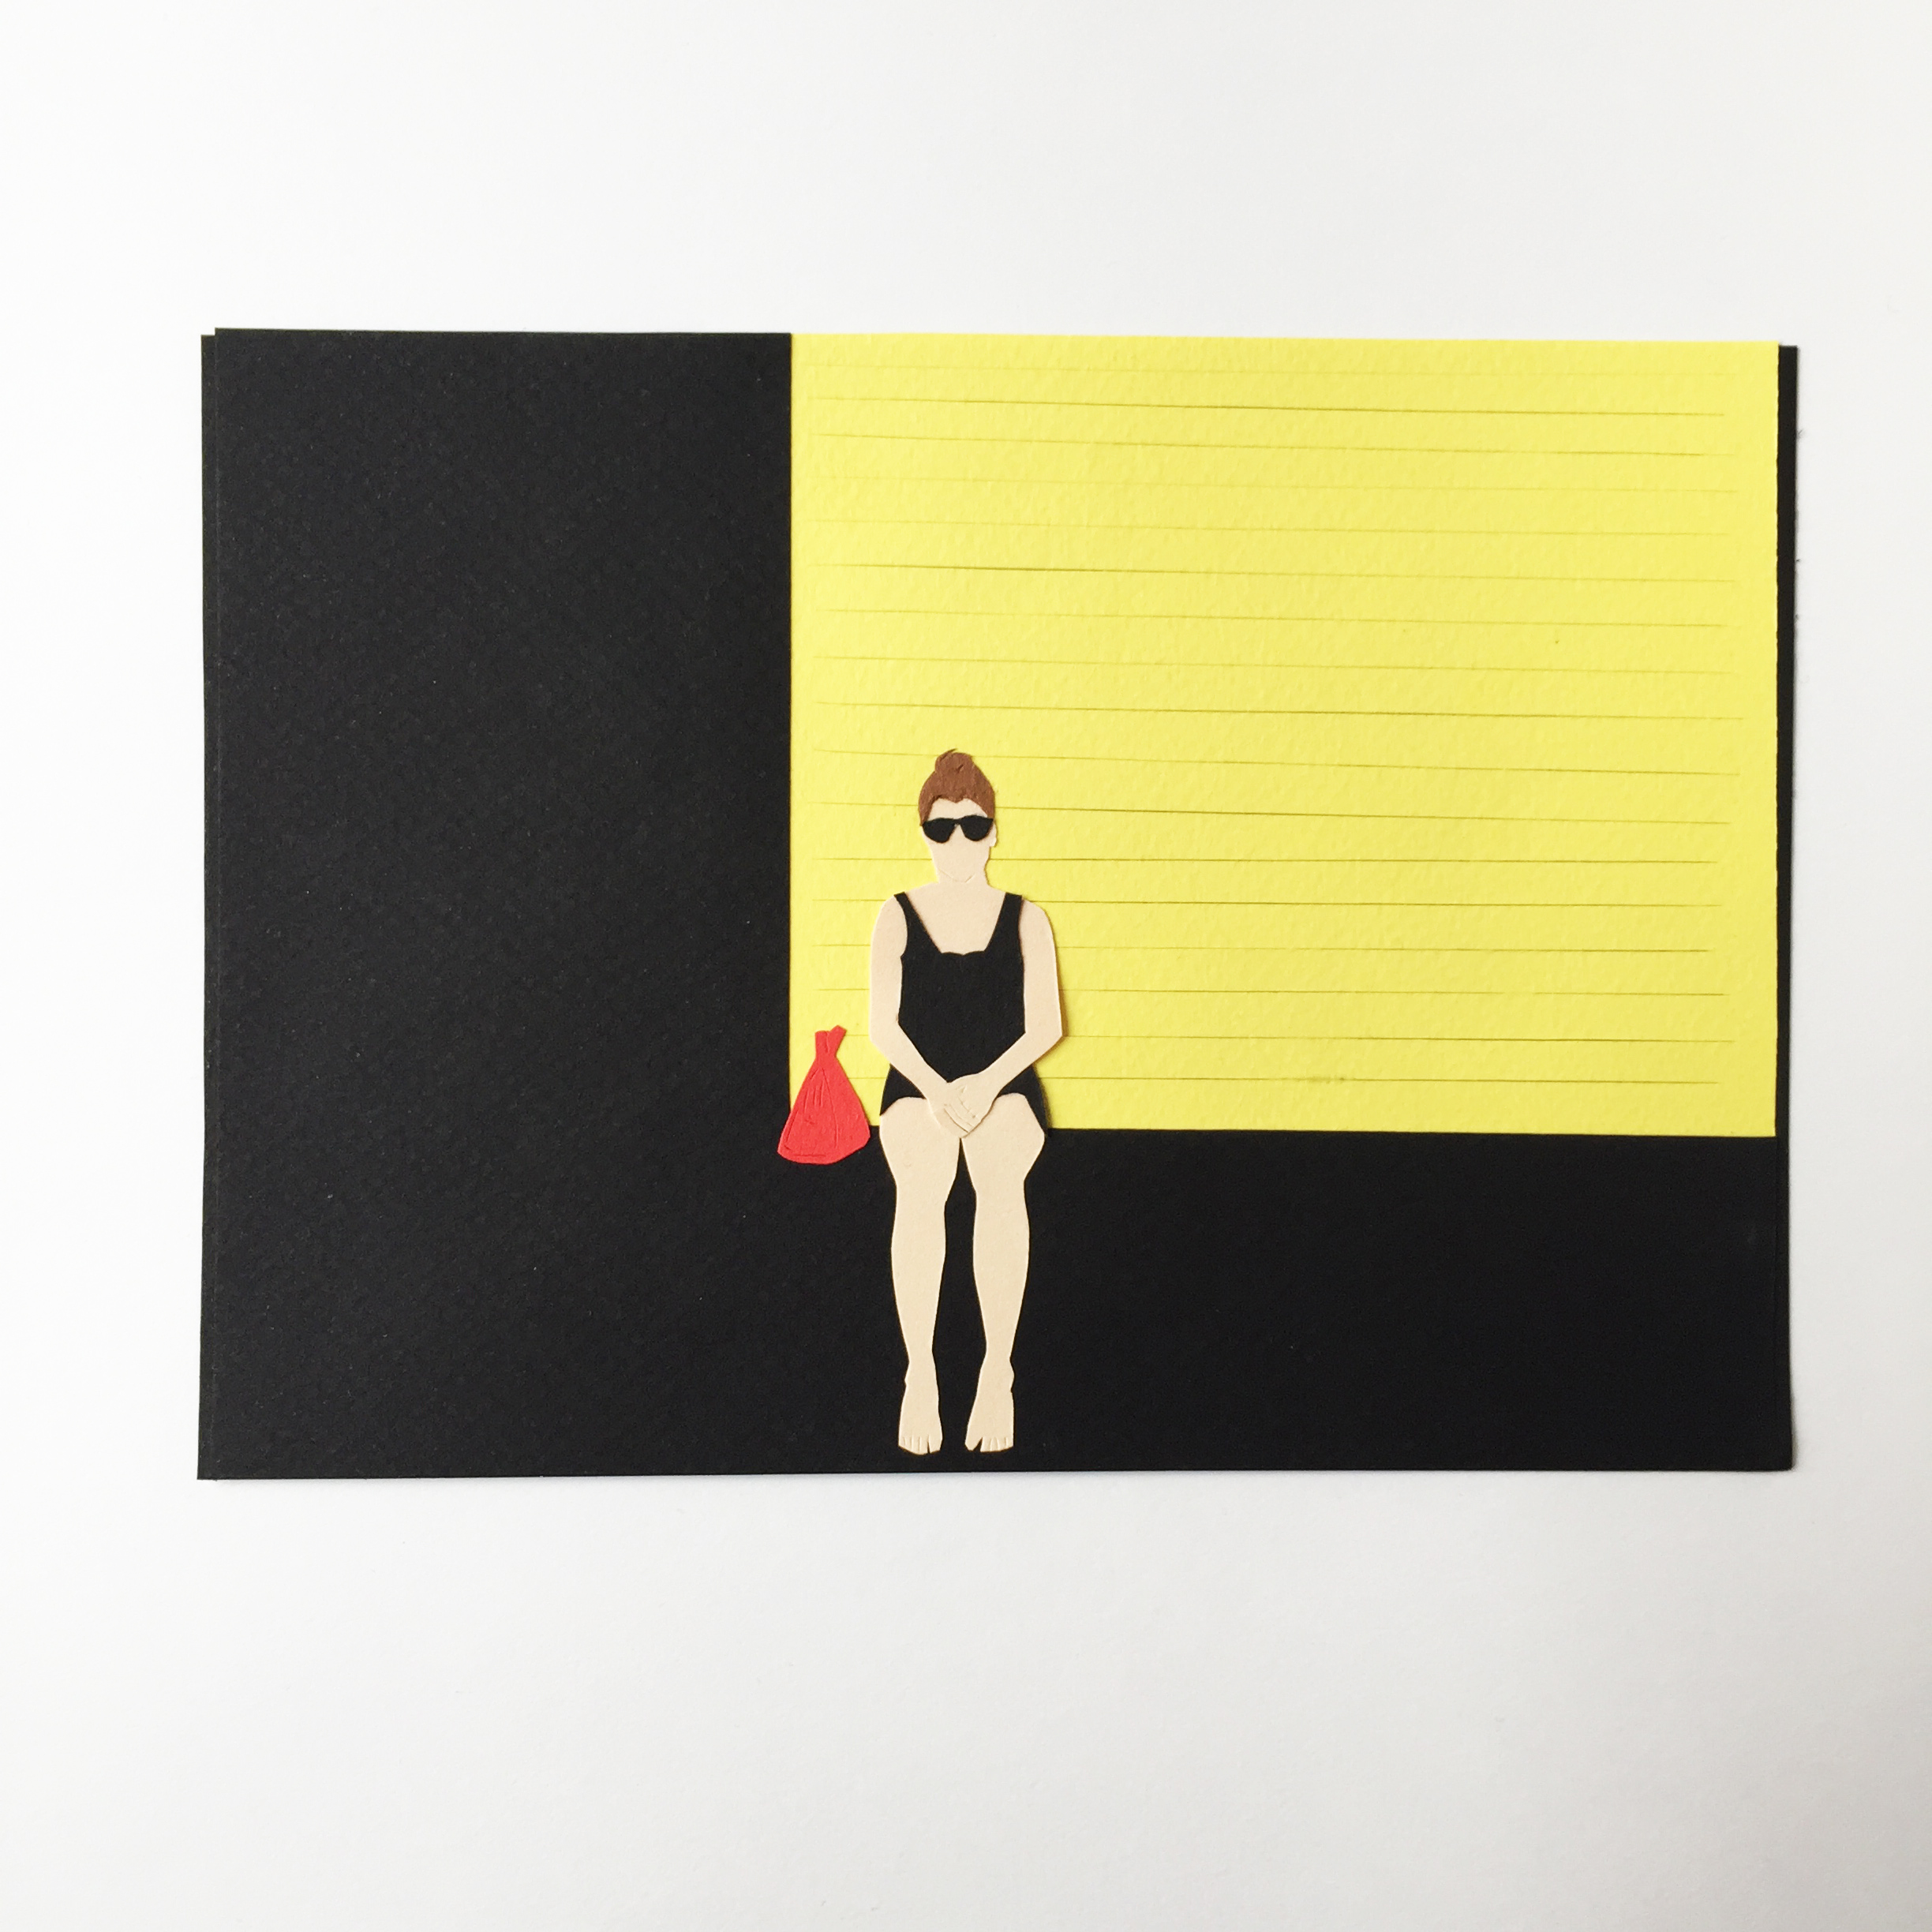 Paper Portrait Girl Sitting with Red Purse by Kate Zaremba 2015.jpg